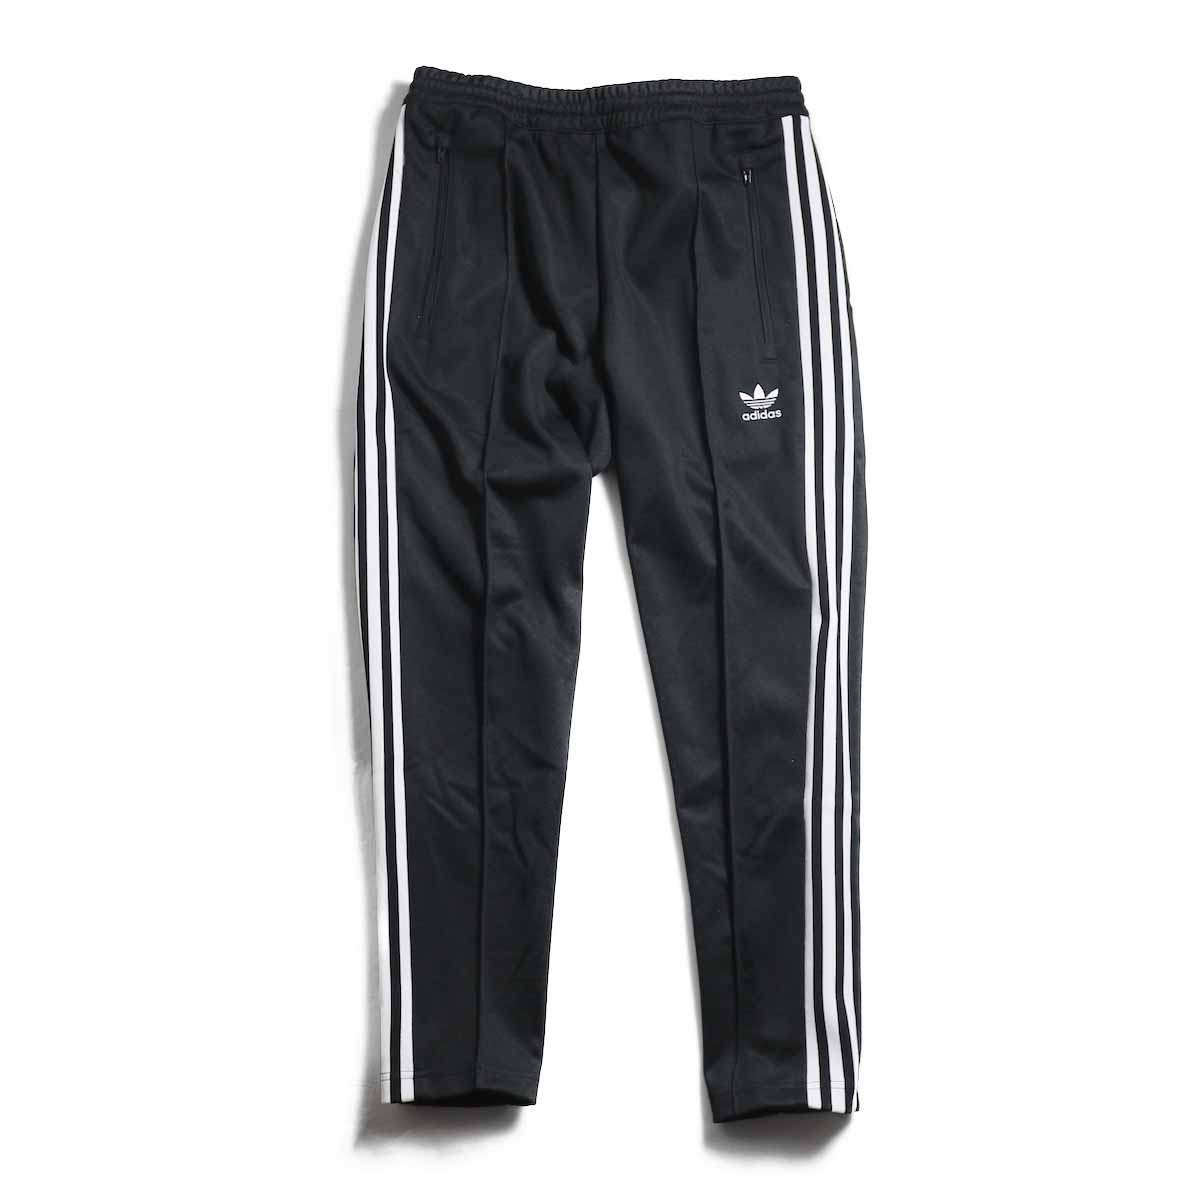 adidas originals / Beckenbauer Track Pants -Black